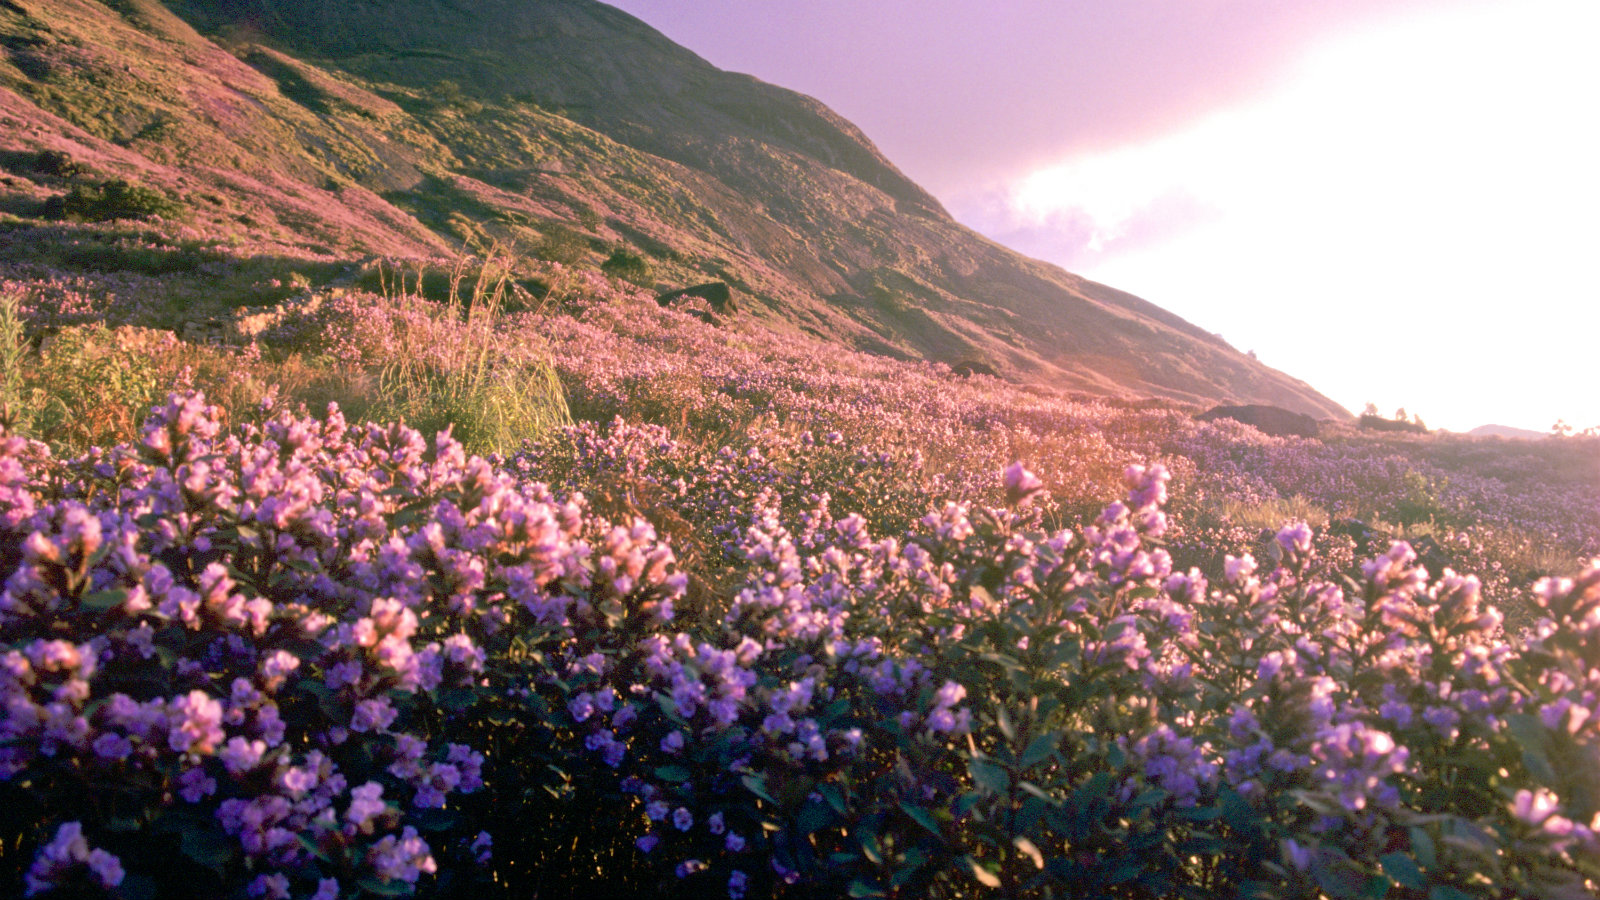 A rare flower that blooms every 12 years is sweeping the hills in southern India